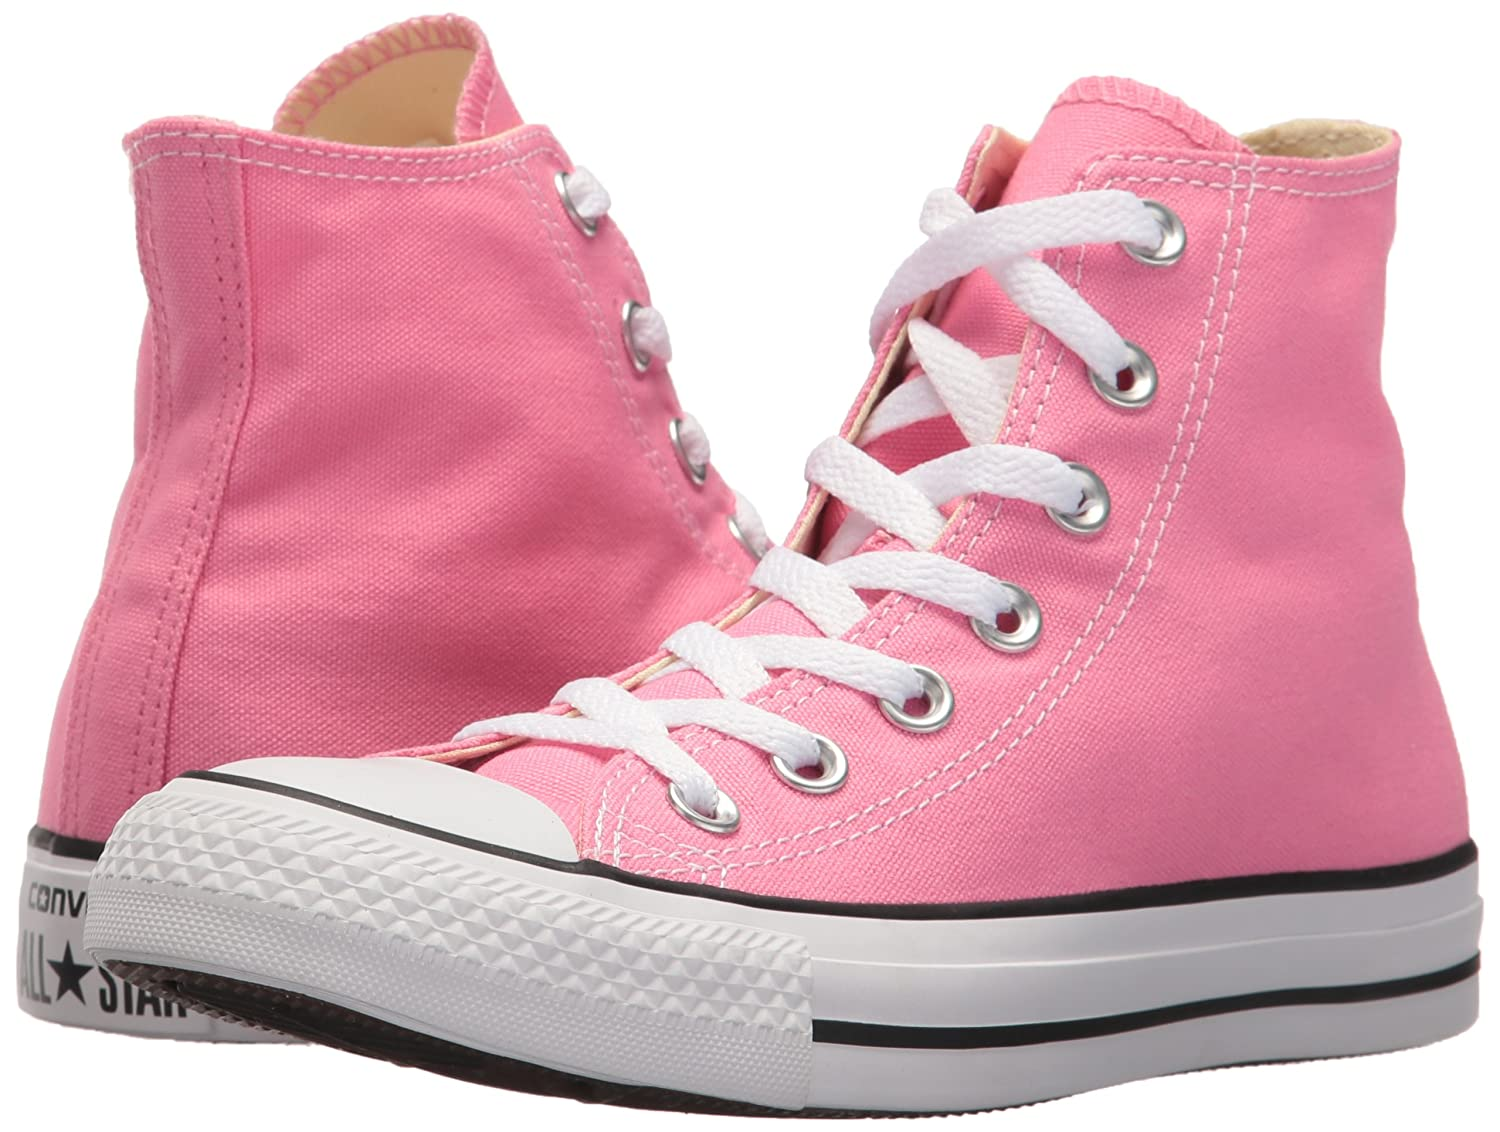 Converse Chuck Taylor All Star High Top B001QCY6I8 15 US Men/17 US Women|Pink